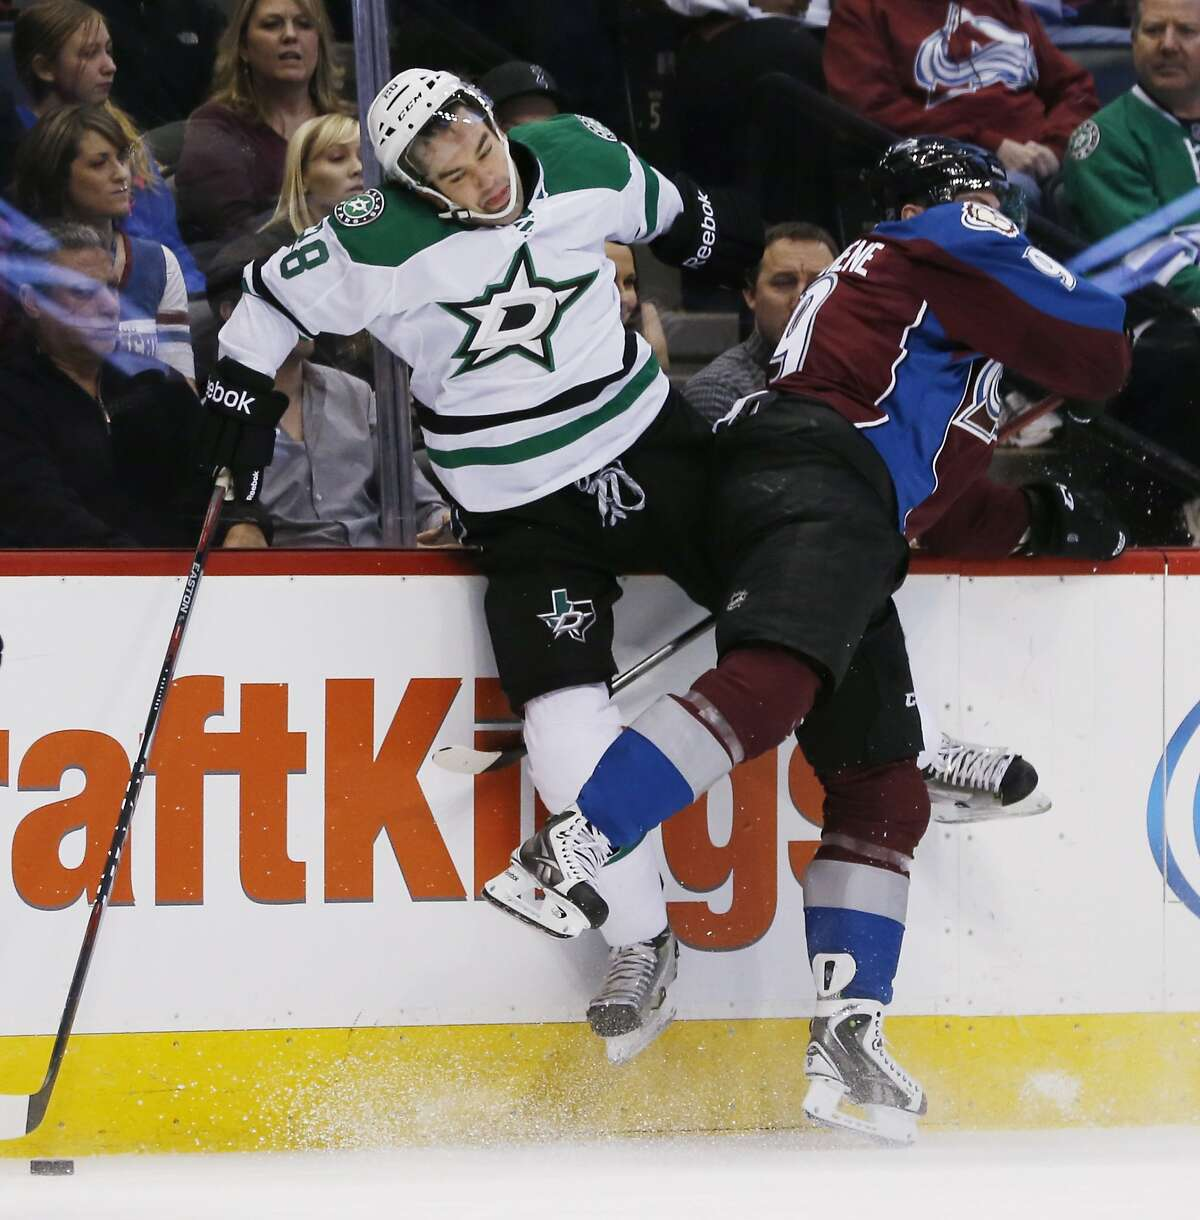 Those who sport the pentagram often have the ability to levitate as Dallas Stars defenseman David Schlemko demonstrates.